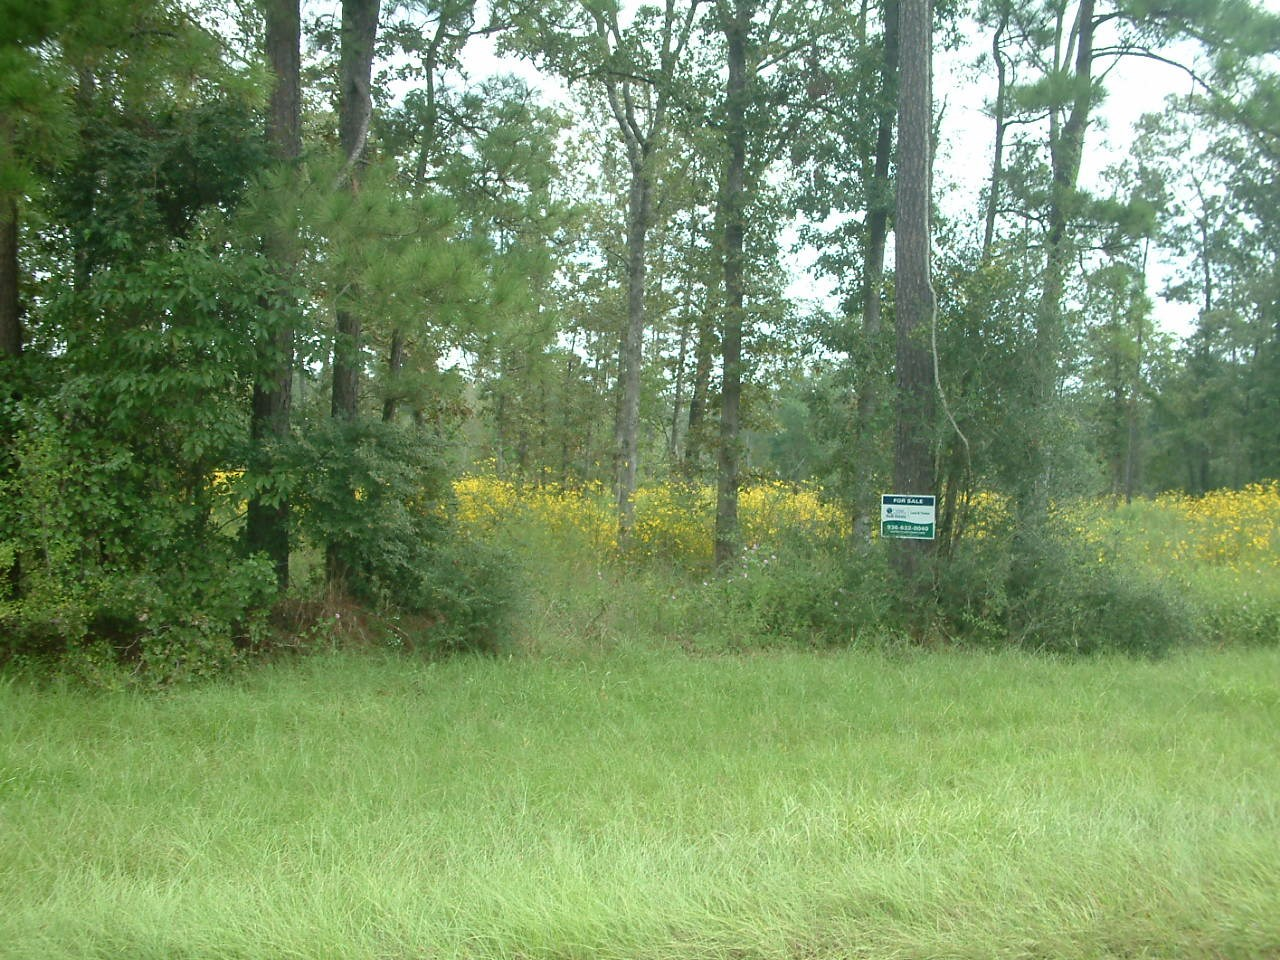 45 ACRES WOODED RESIDENTIAL LAND - PARTIAL SALES POSSIBLE